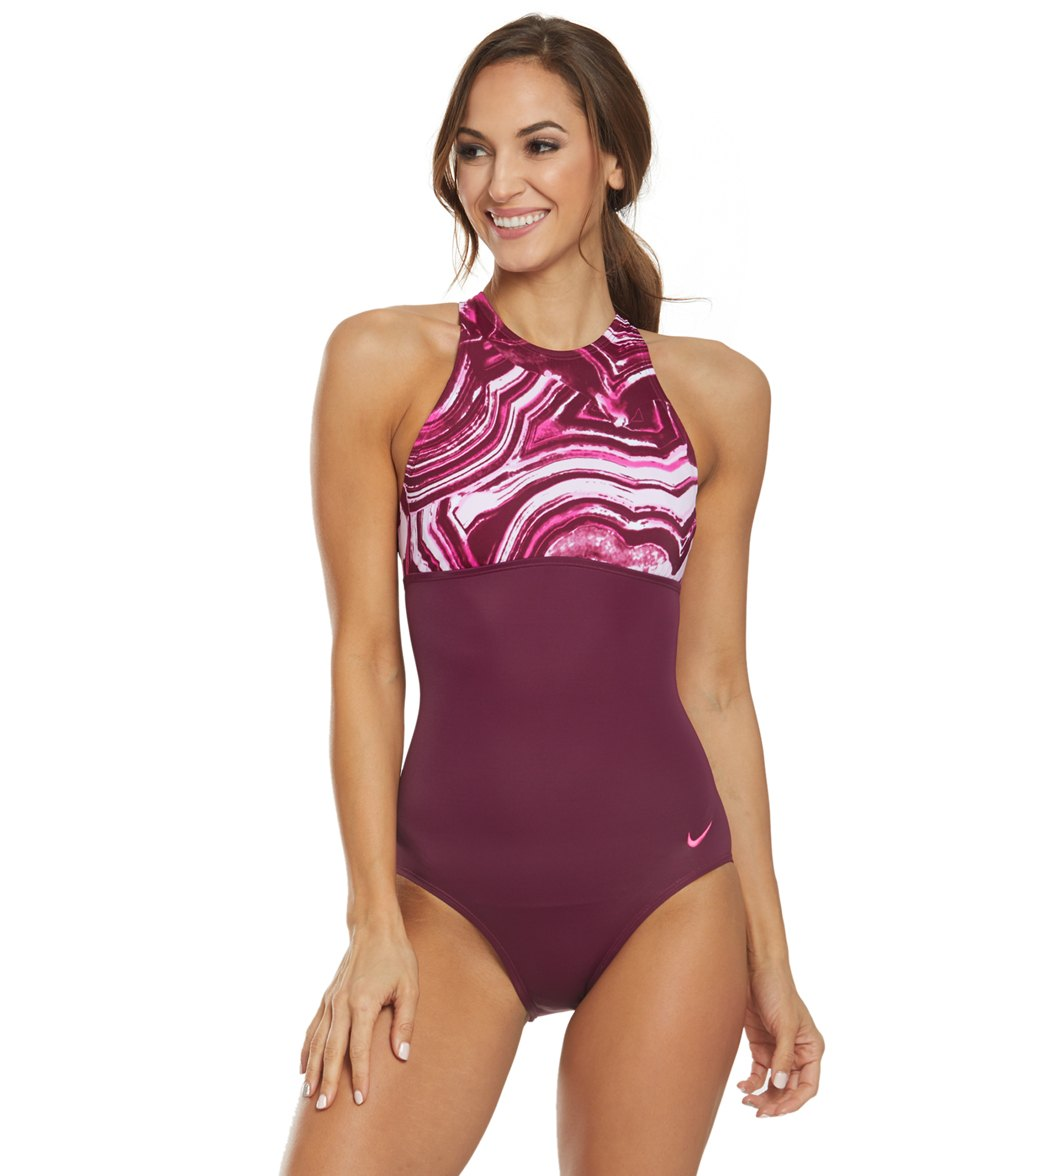 a8a69a85474 Nike Women's Amp Ripple Chlorine Resistant One Piece Swimsuit at  SwimOutlet.com - Free Shipping